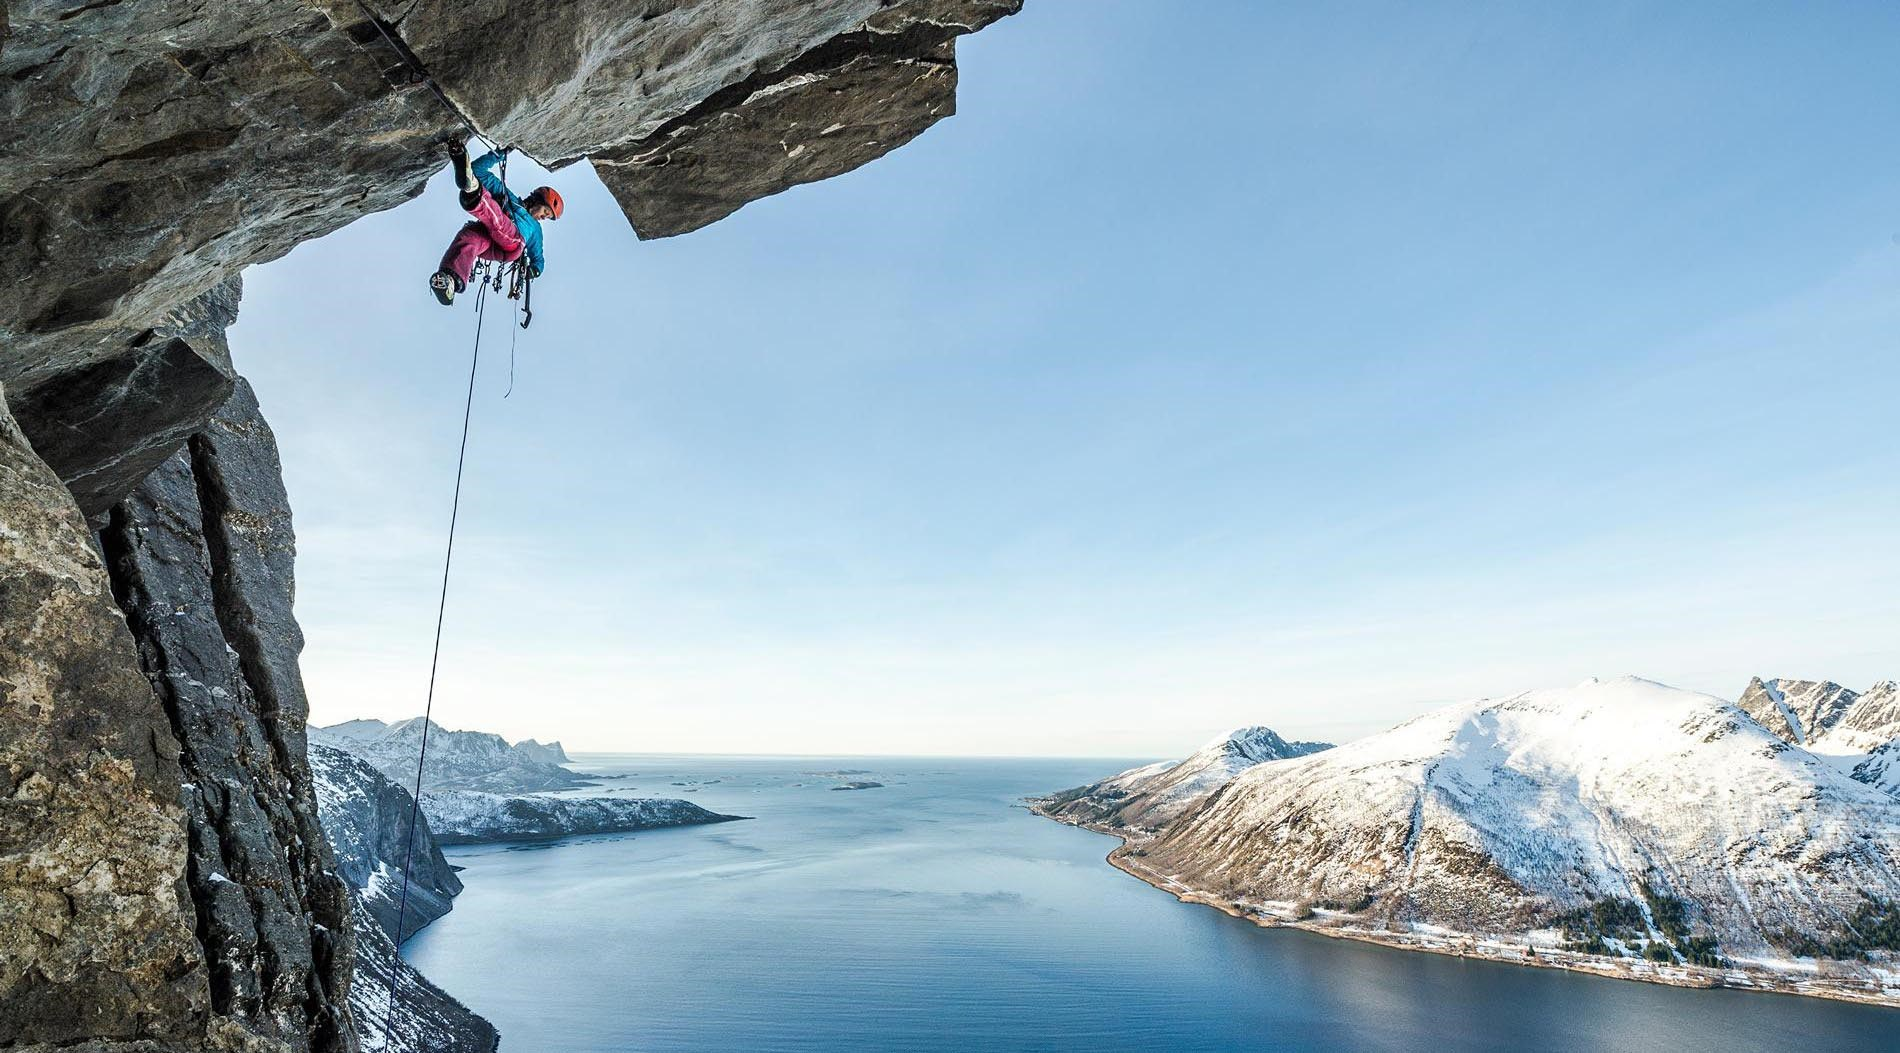 Banff mountain film festival returns to the midlands